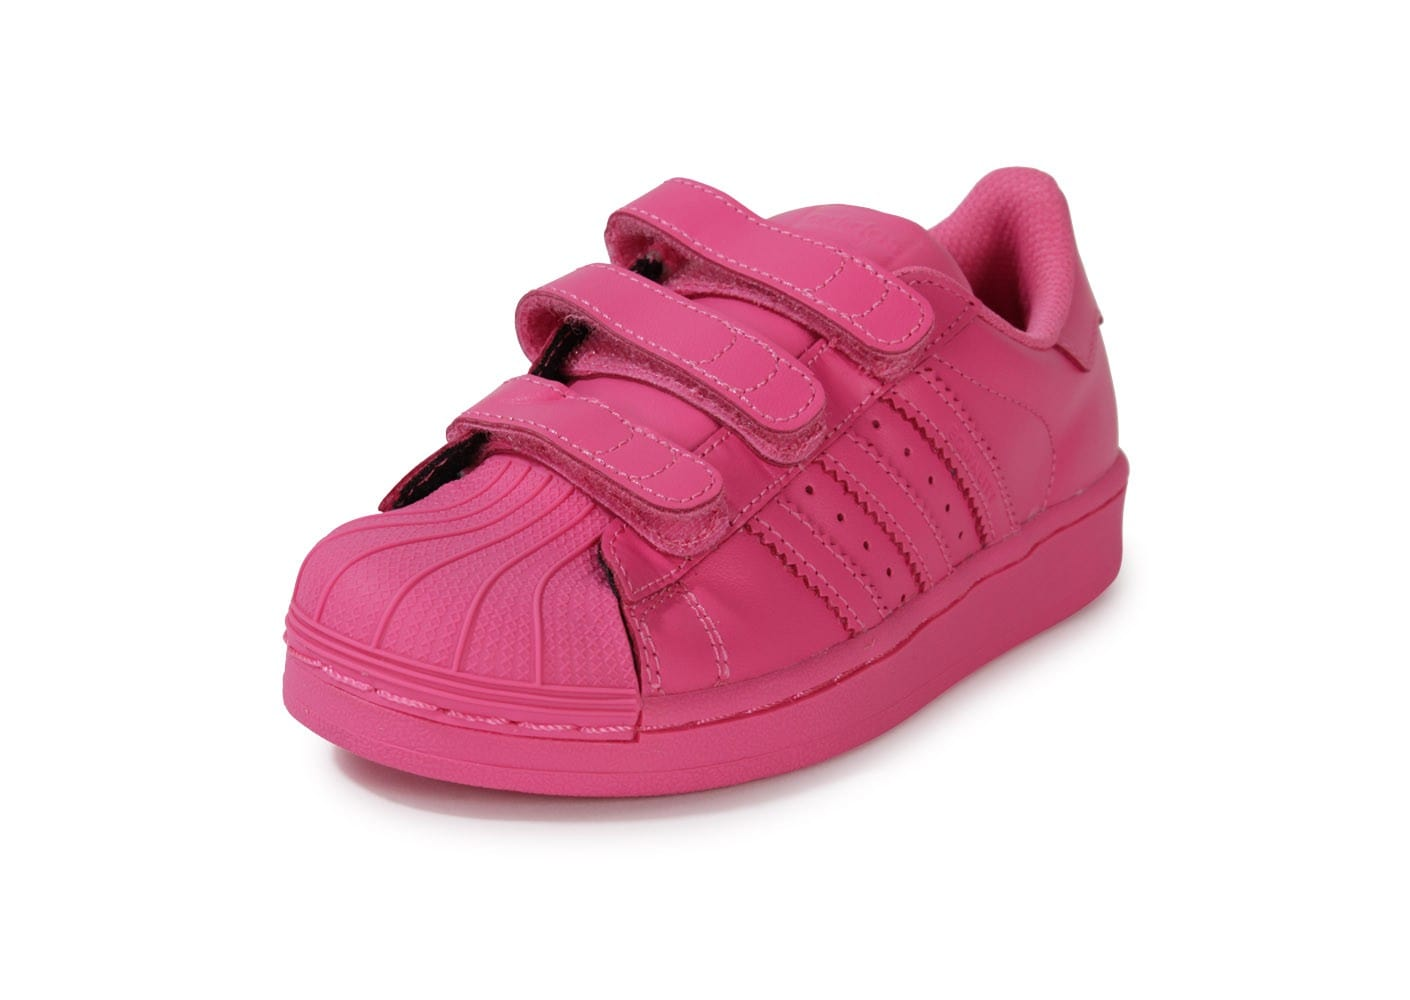 e41ed139add2a Rose Chaussures Chausport Adidas Enfant Supercolor Superstar wxAqgZaH